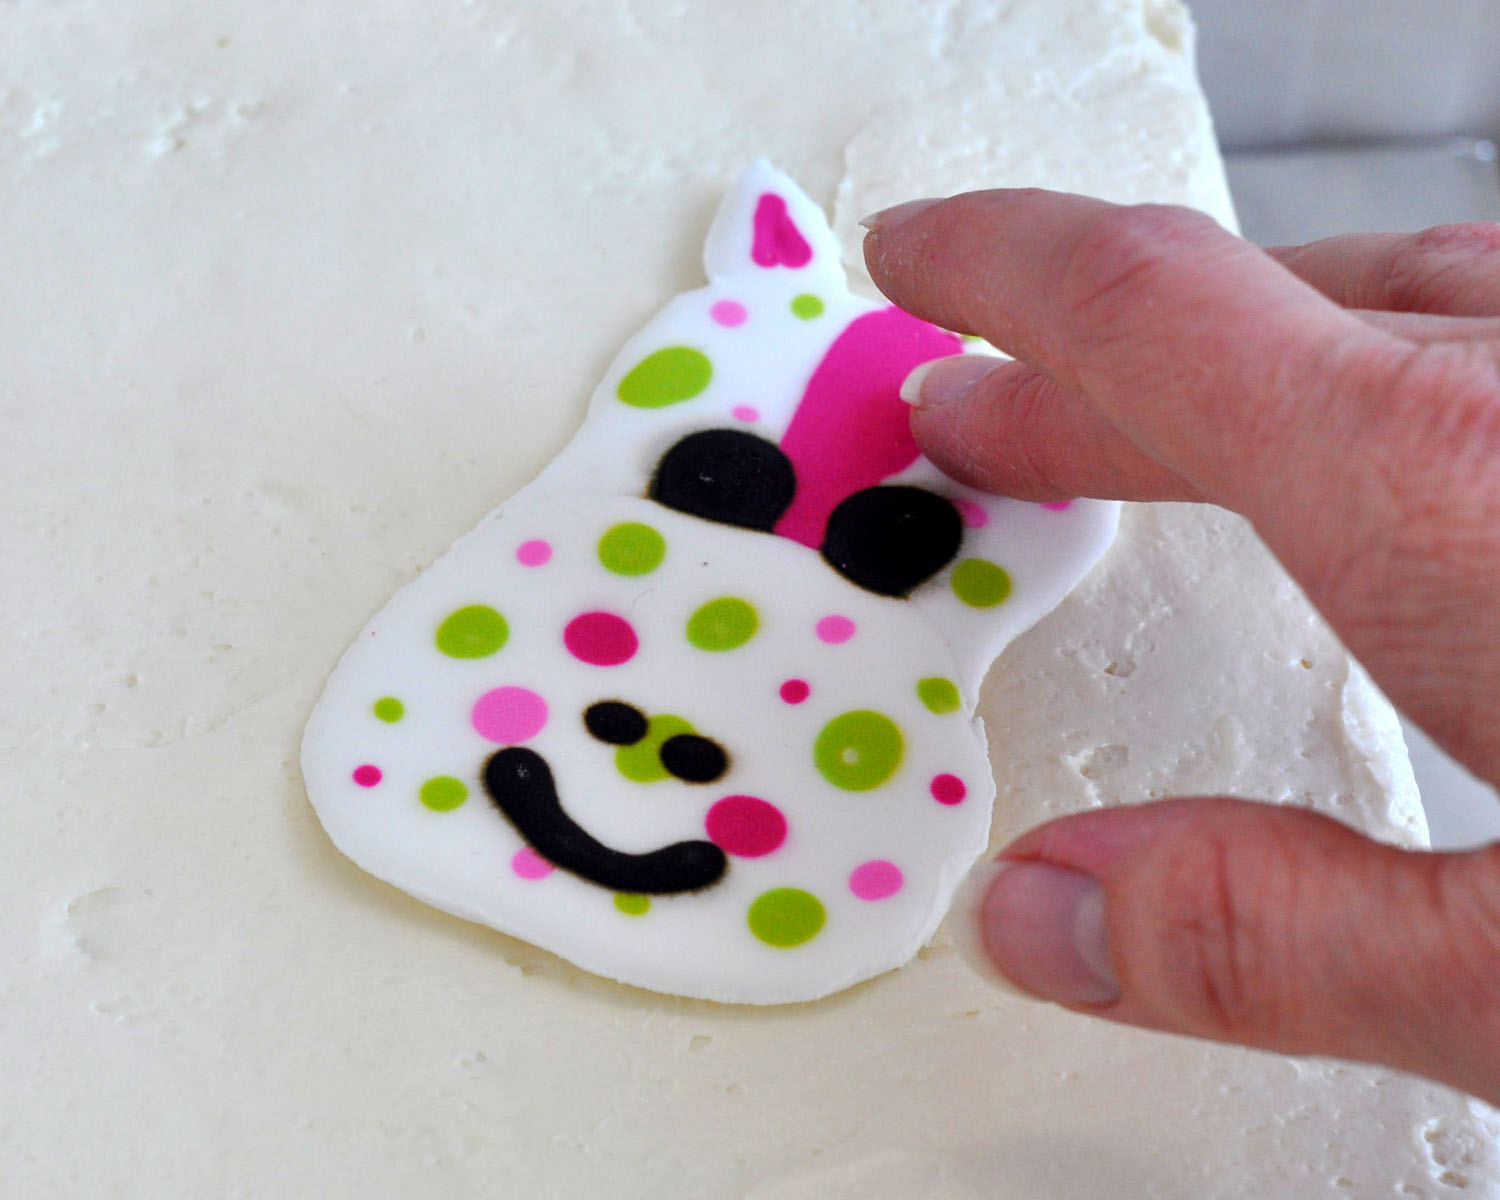 Cake Decoration With Icing : Beki Cook s Cake Blog: Royal Icing Cake Decorations